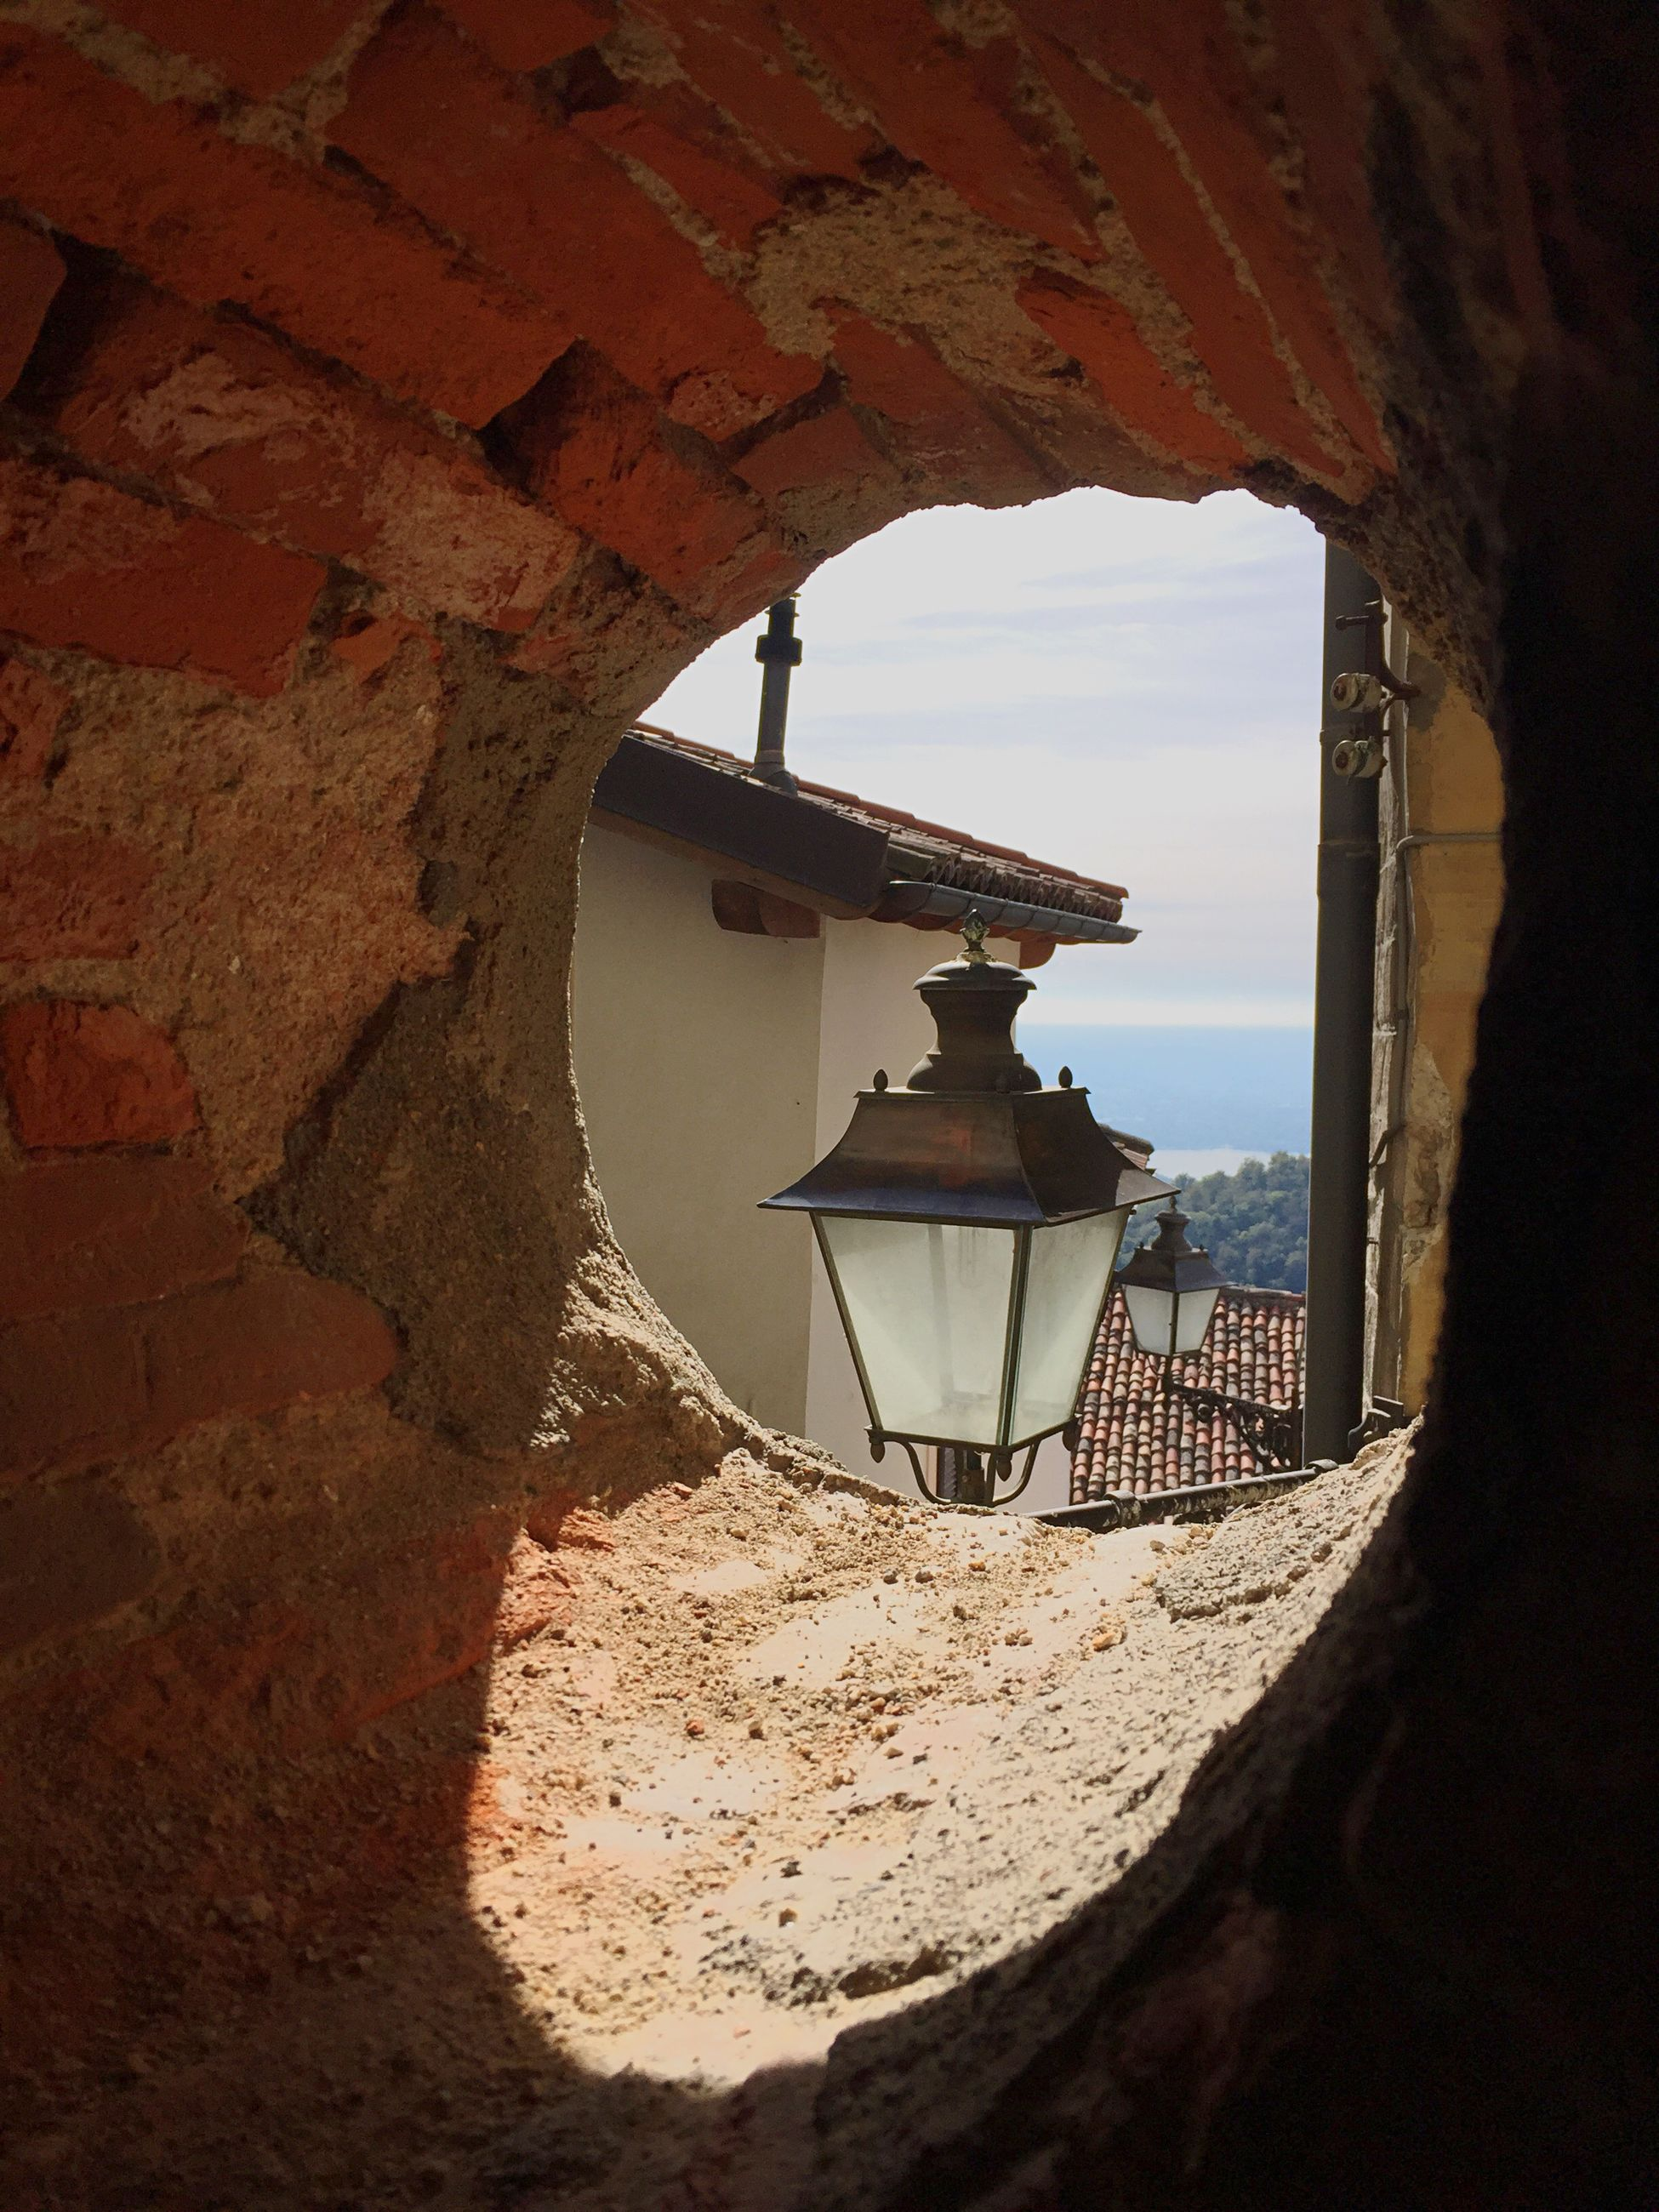 wall - building feature, built structure, architecture, indoors, hole, window, sea, sky, day, stone material, town, no people, weathered